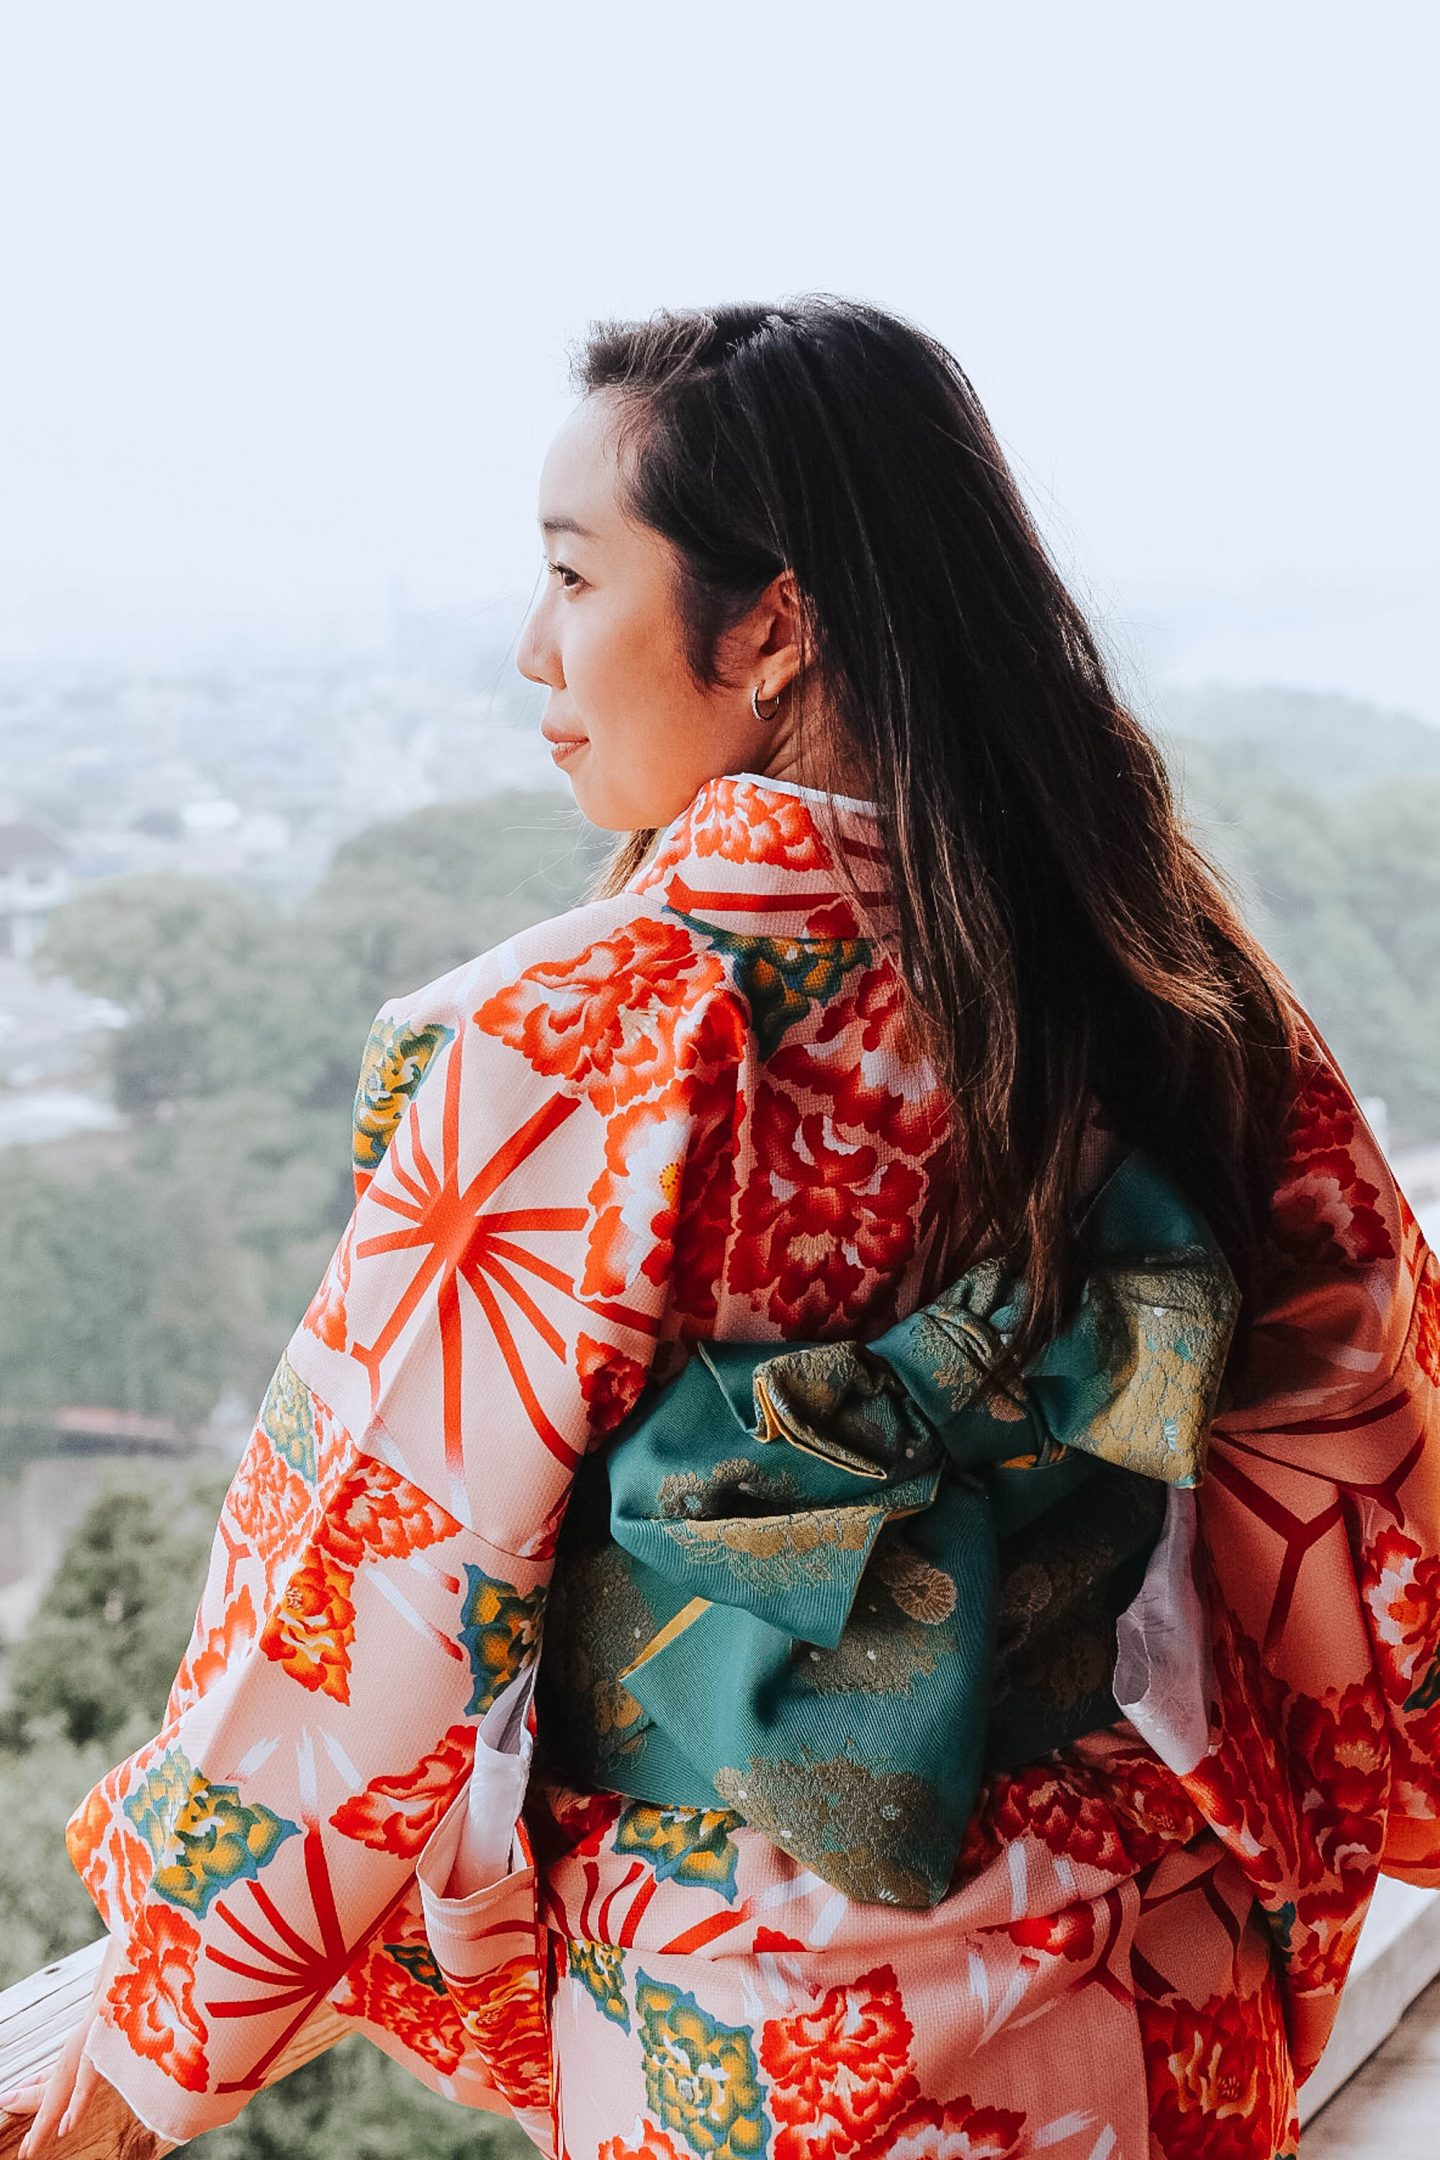 Trying on silk kimonos from Nishio in central japan